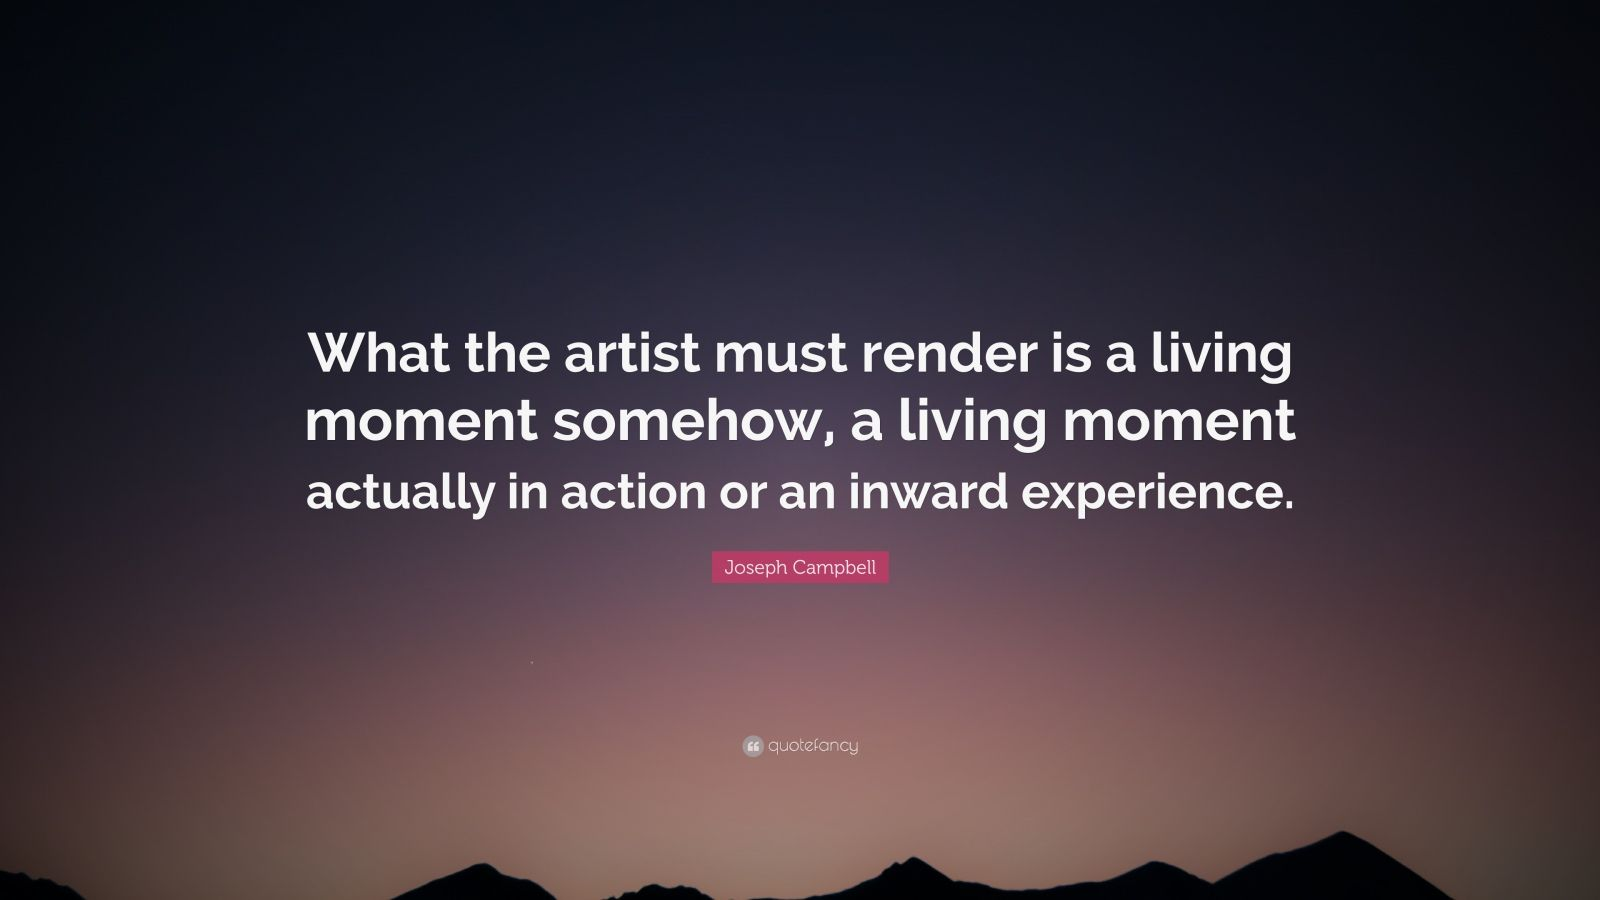 """Joseph Campbell Quote: """"What the artist must render is a living moment somehow, a living moment actually in action or an inward experience."""""""